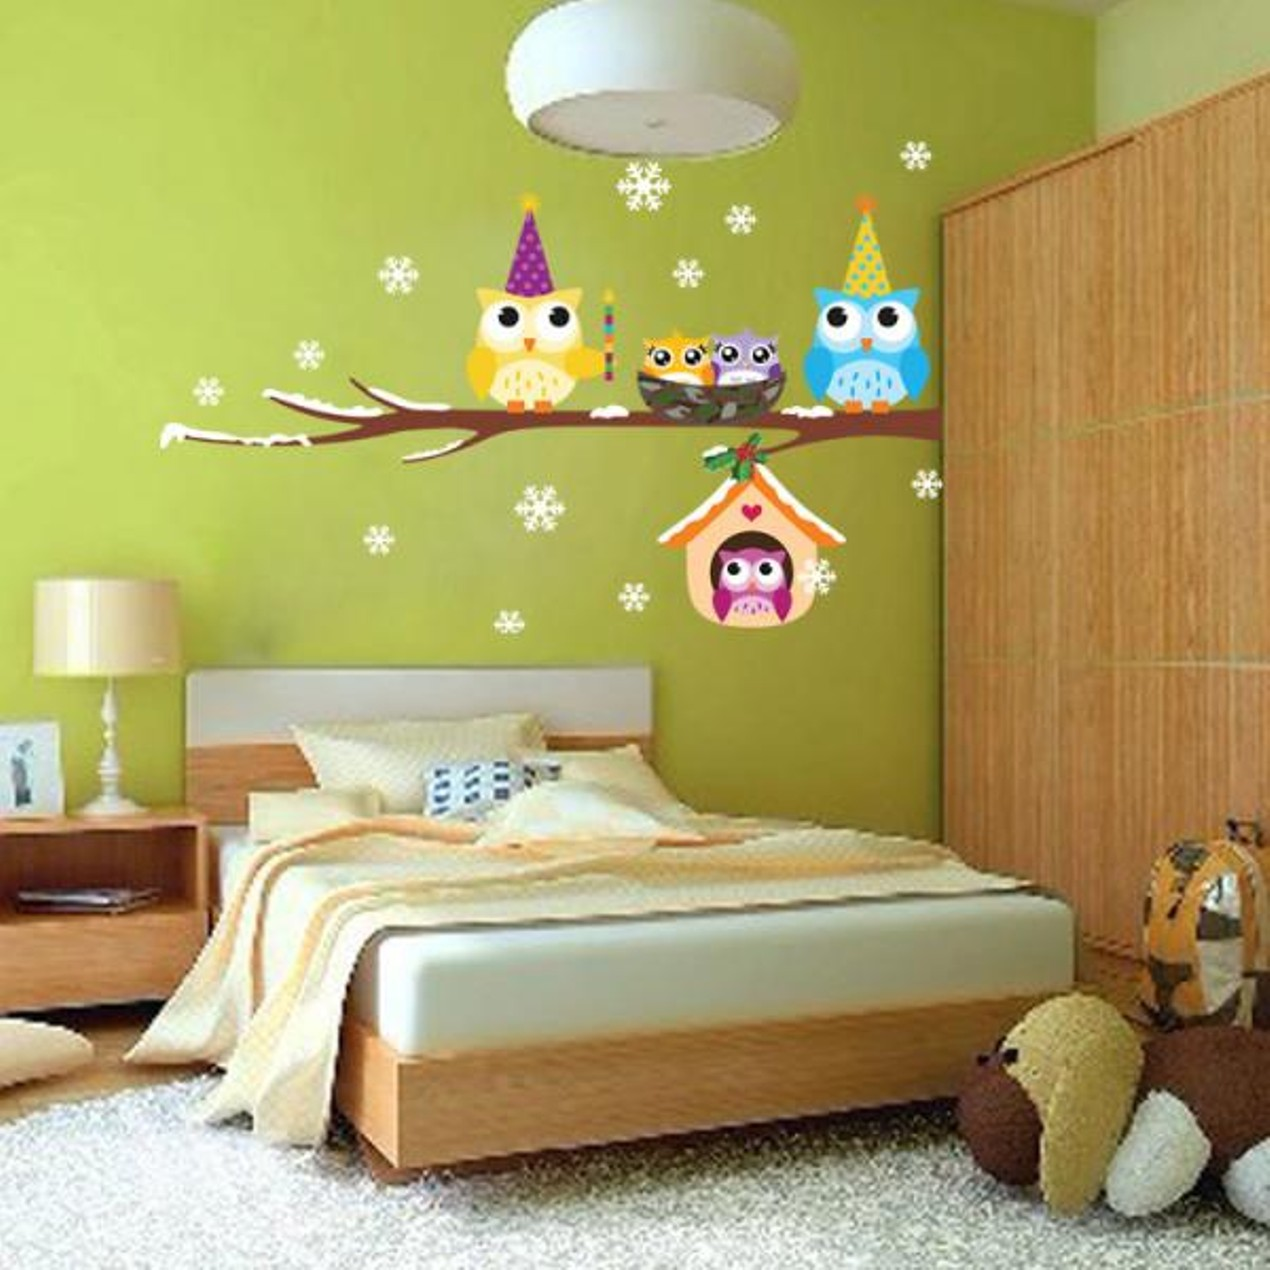 Cute Owl Snowflake Wall Stickers Christmas Decor - Tanga